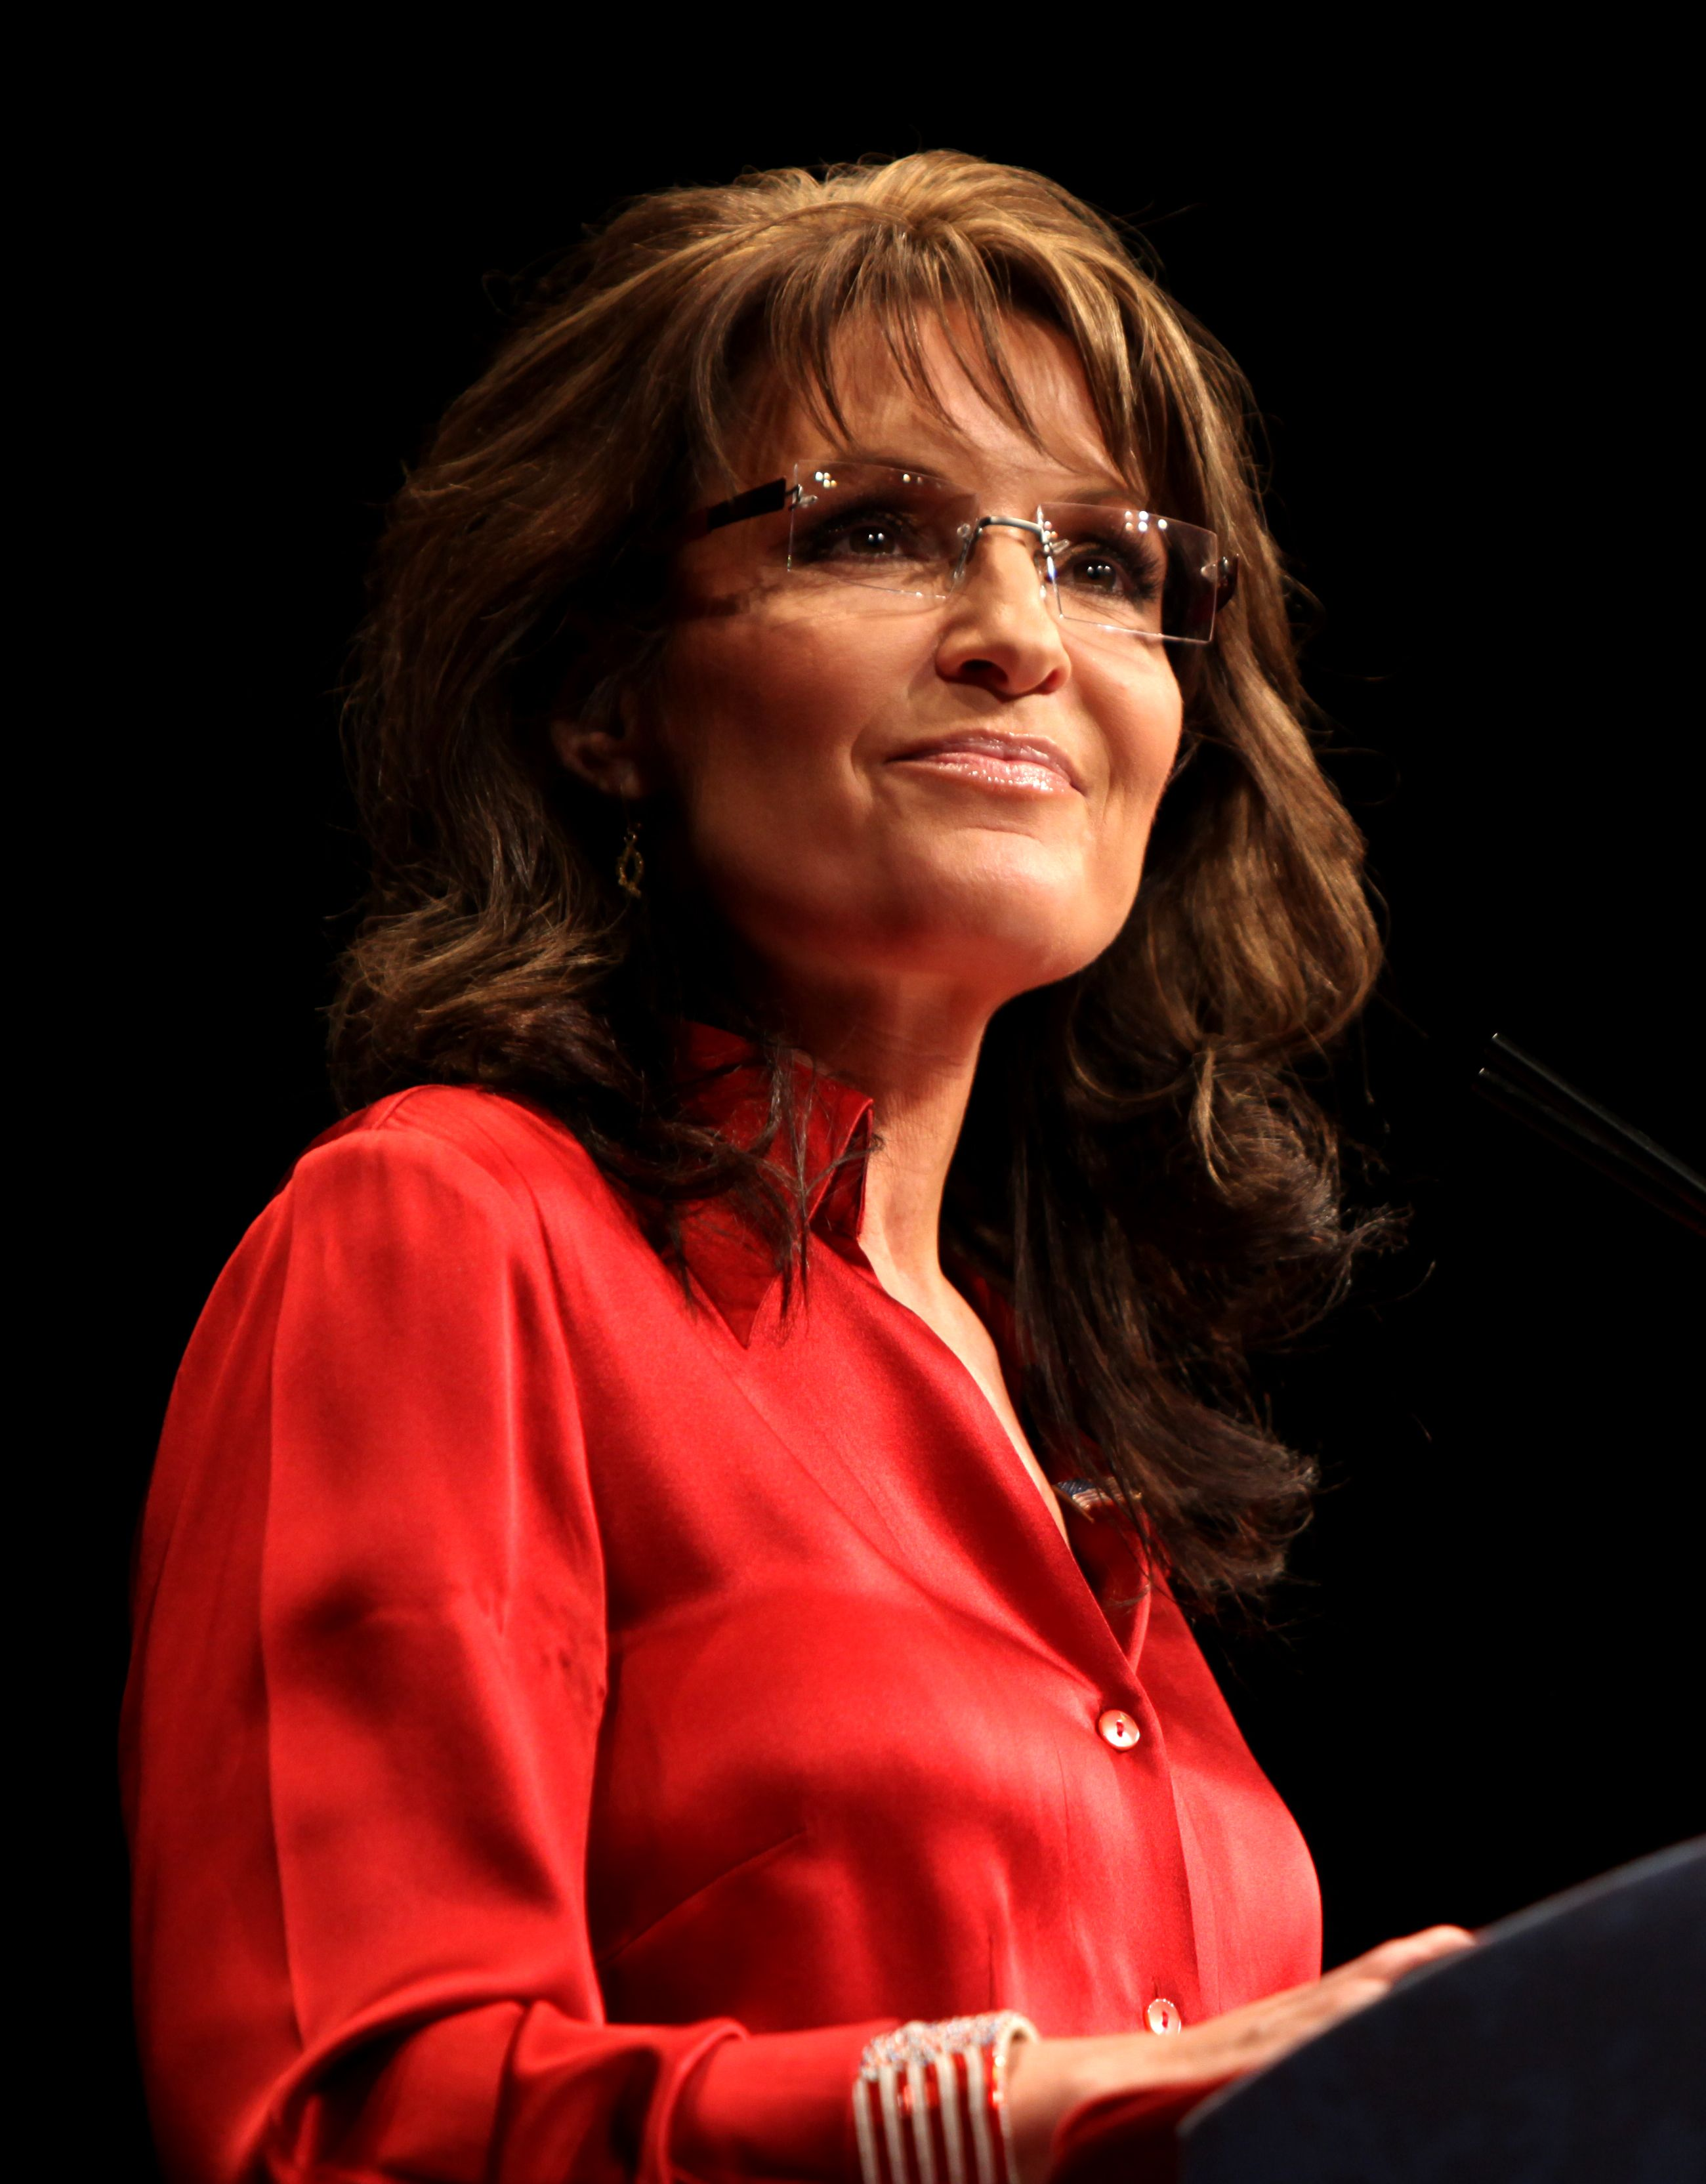 sarah palin putinsarah palin young, sarah palin eminem, sarah palin russia, sarah palin 2012, sarah palin wiki, sarah palin tea party, sarah palin vs lady gaga, sarah palin net worth, sarah palin snl, sarah palin speech, sarah palin putin, sarah palin clothes scandal, sarah palin bathing suit, sarah palin senator o'biden, sarah palin 2017 news, sarah palin alec baldwin, sarah palin iq, sarah palin news site, sarah palin network, sarah palin latest news